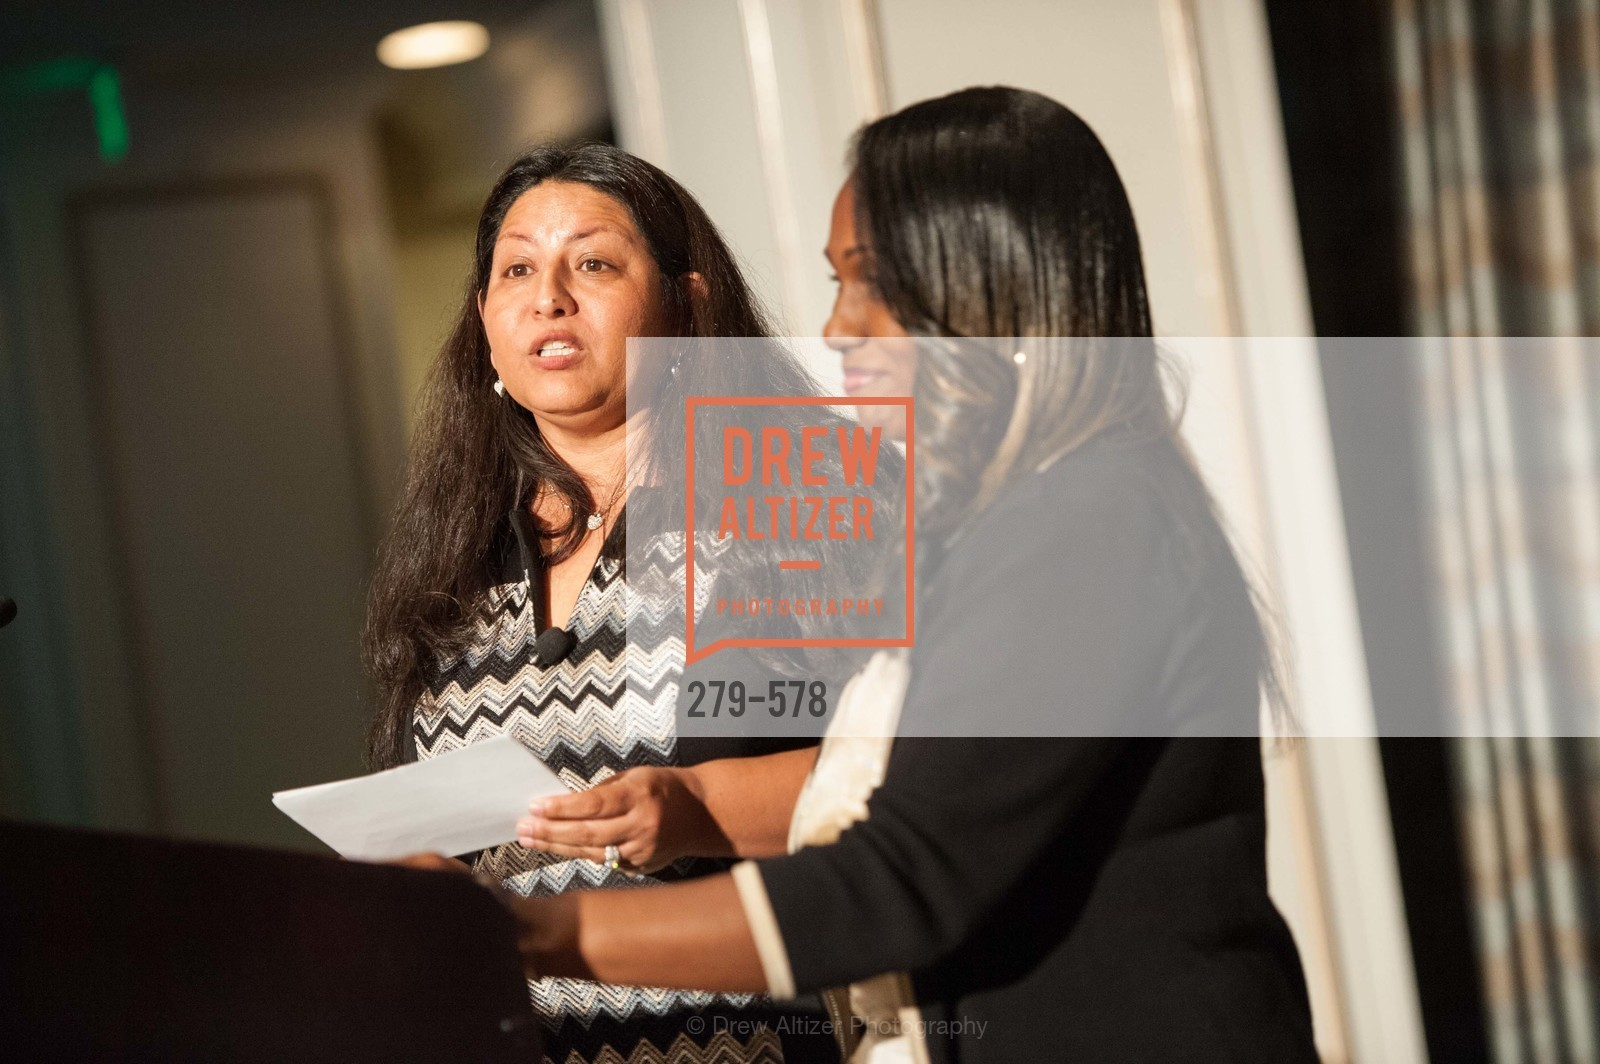 Sonya Batres, Carla Roberts, HOMELESS PRENATAL Annual Luncheon 2014, US, September 30th, 2014,Drew Altizer, Drew Altizer Photography, full-service agency, private events, San Francisco photographer, photographer california